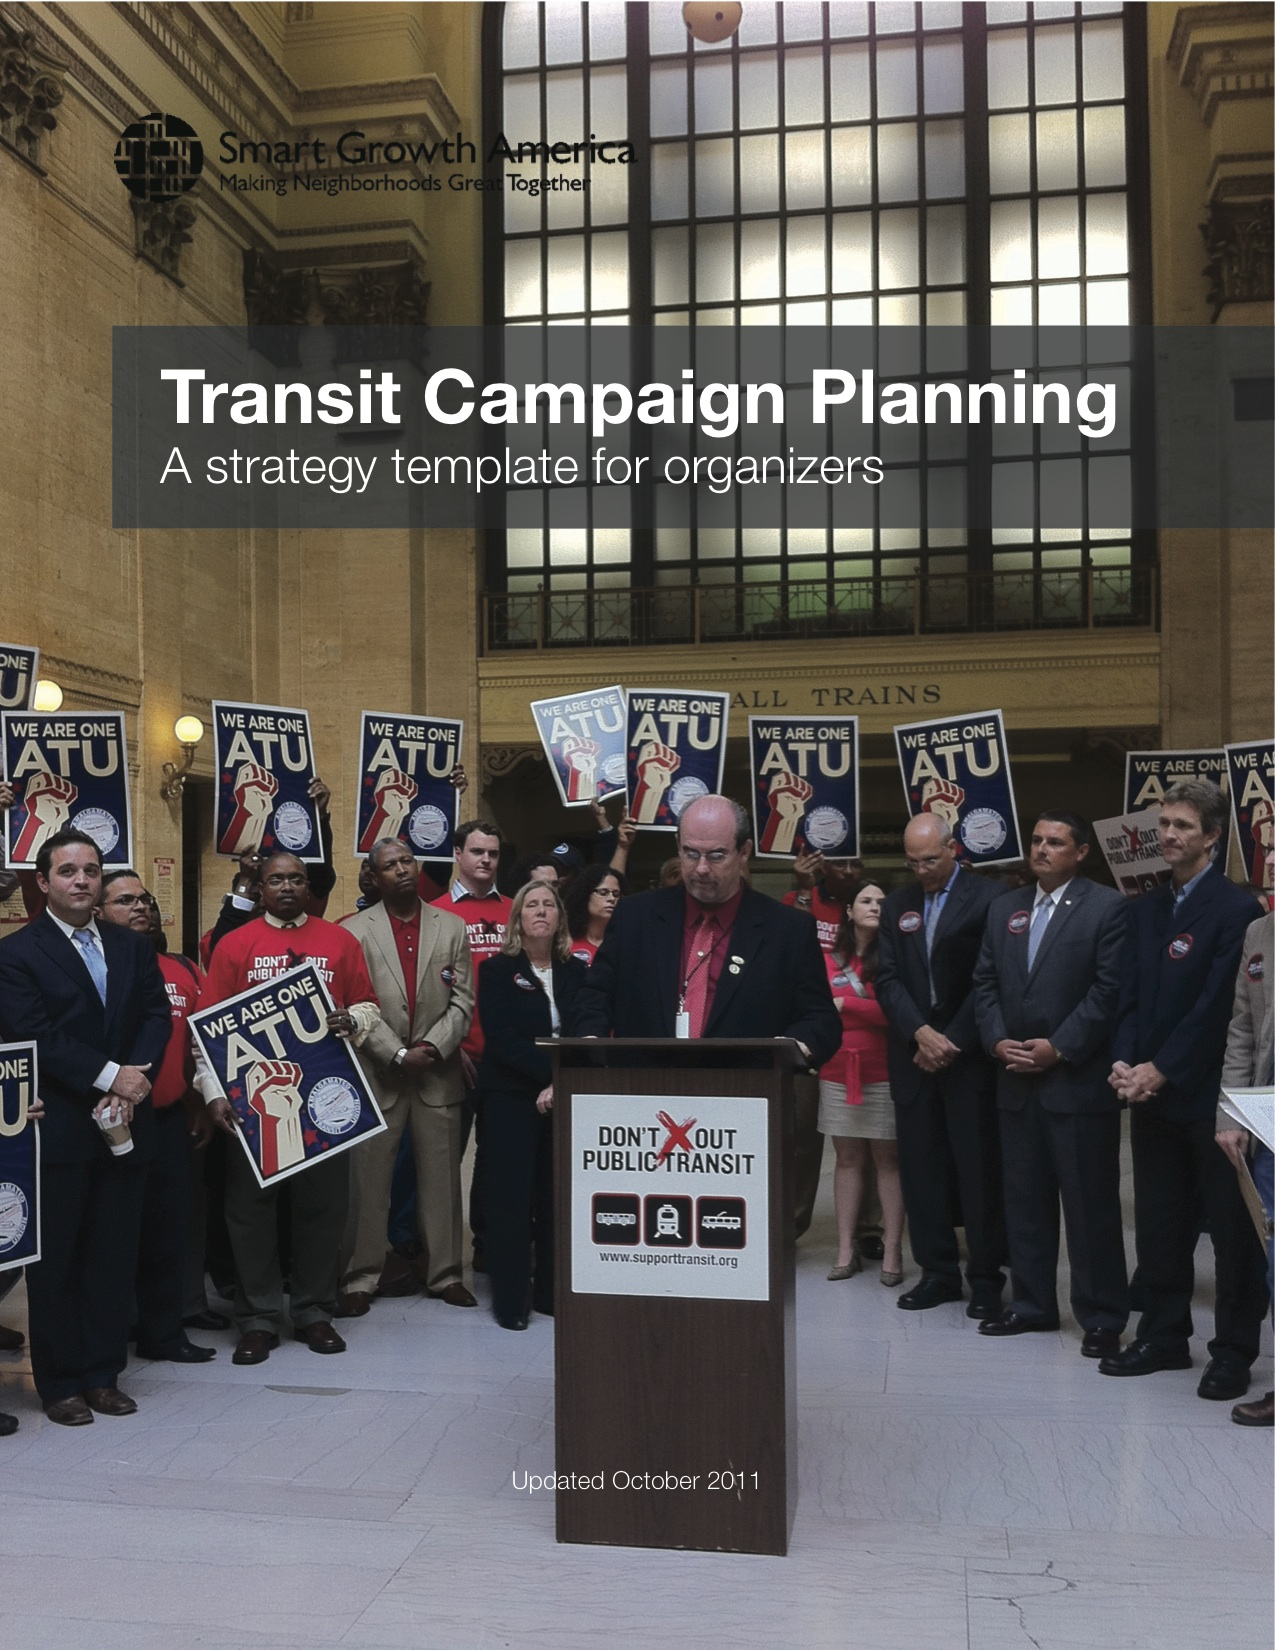 Transit Campaign Planning: A strategy template for organizers